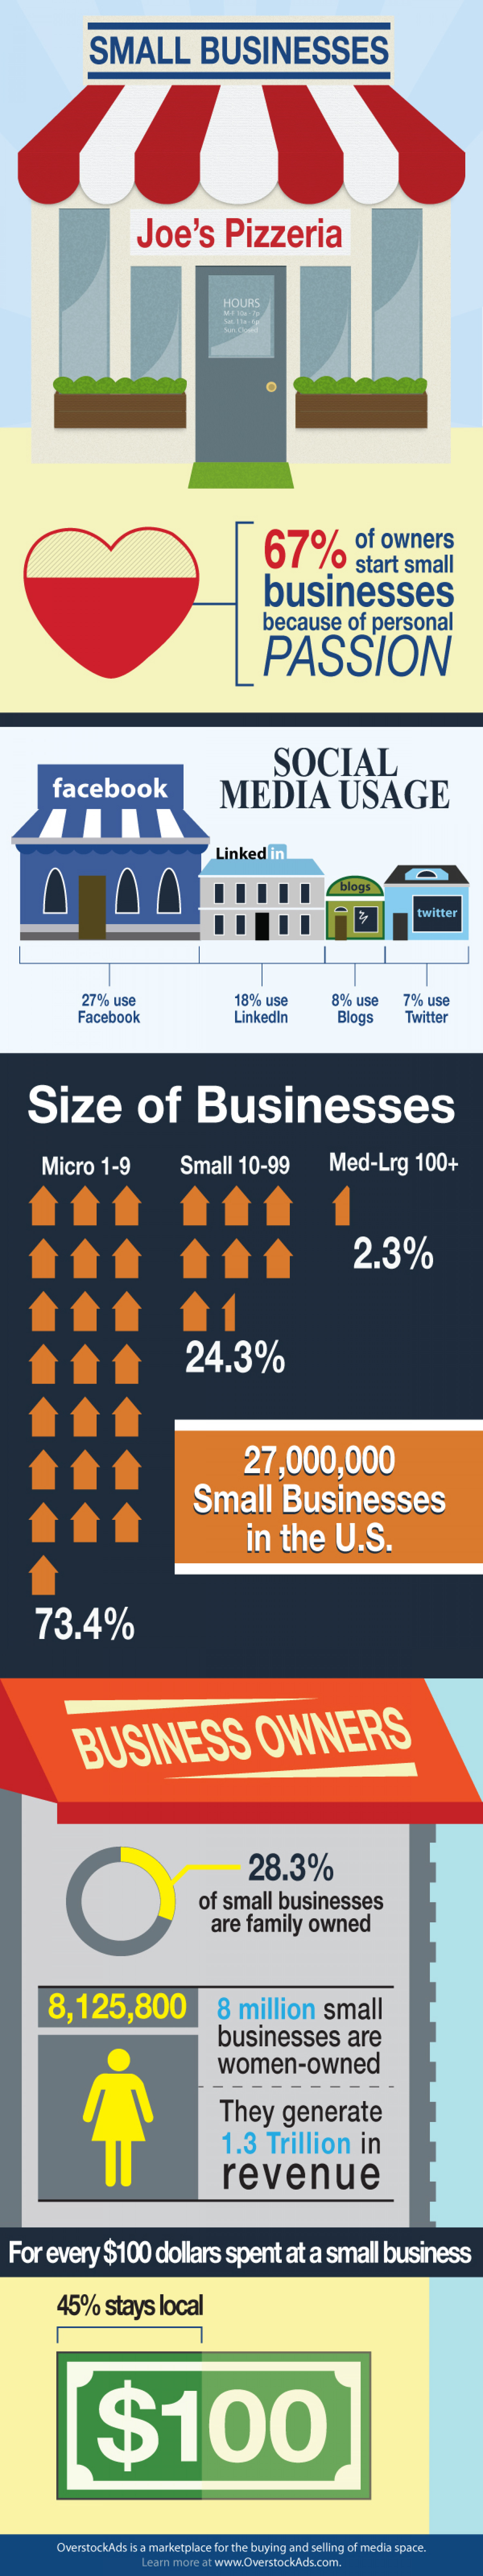 Small Business Infographic Infographic